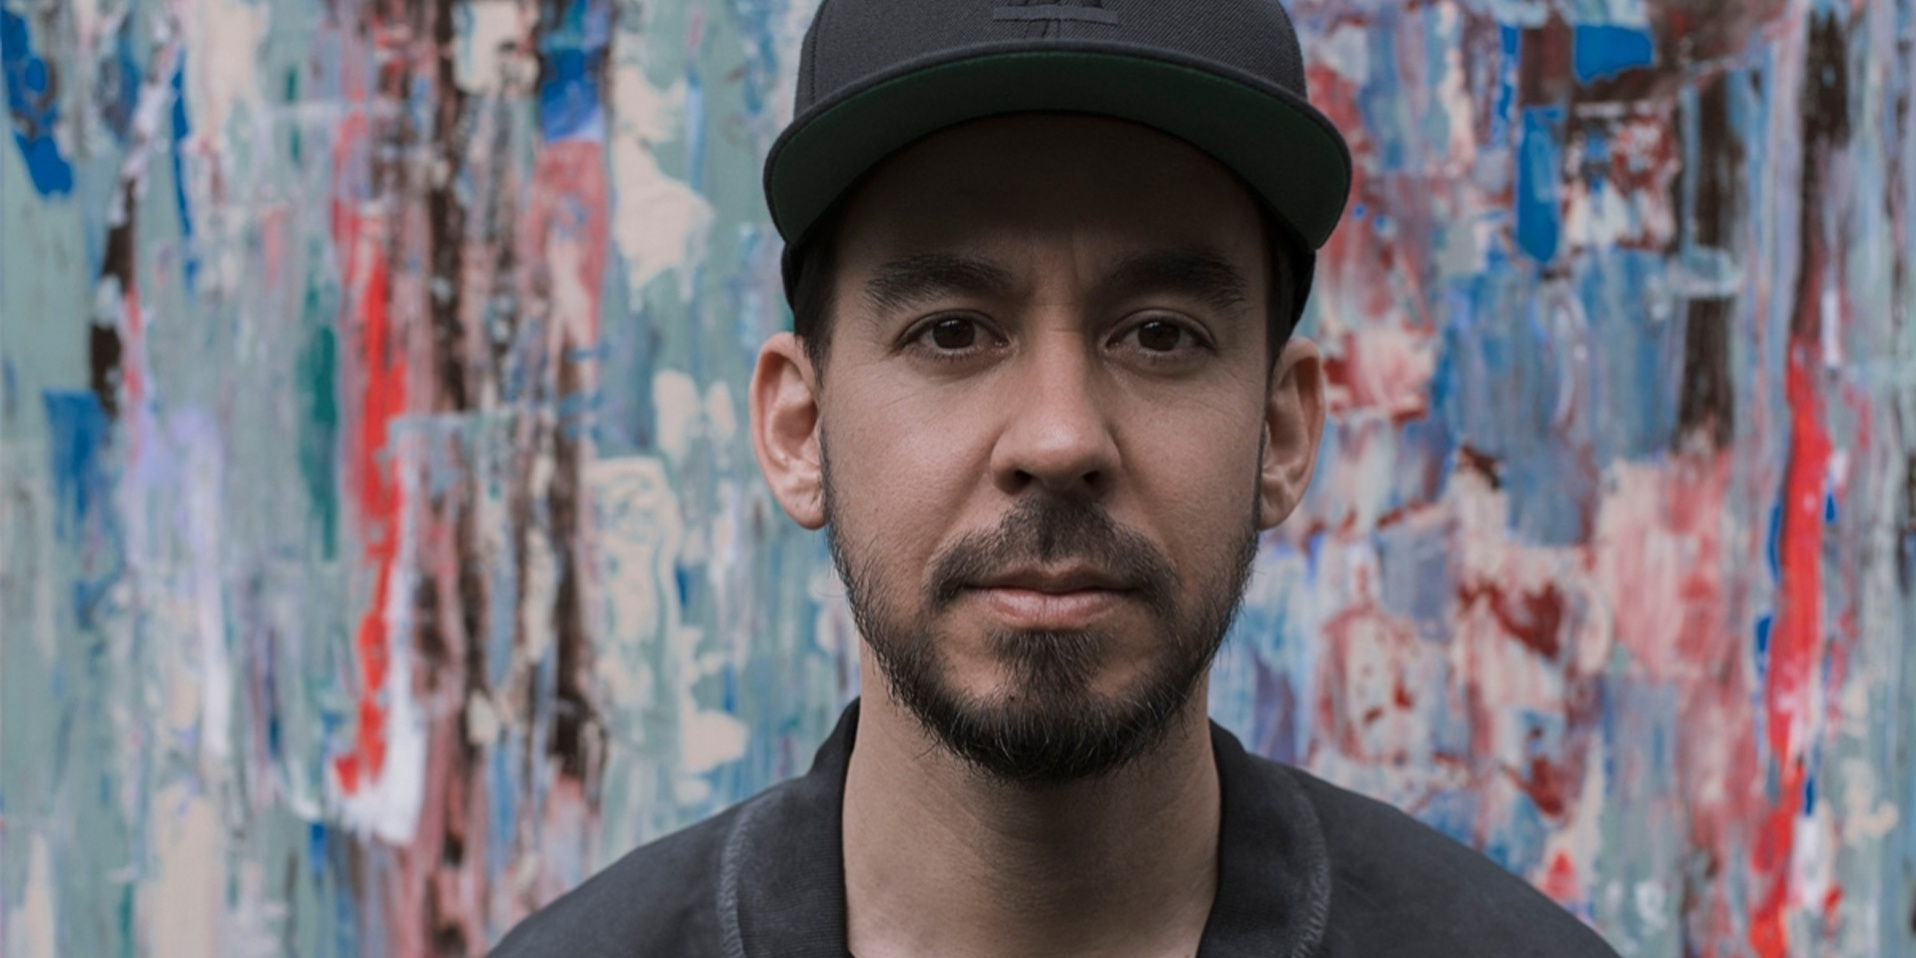 Mike Shinoda and the many hats he wears onstage and in life